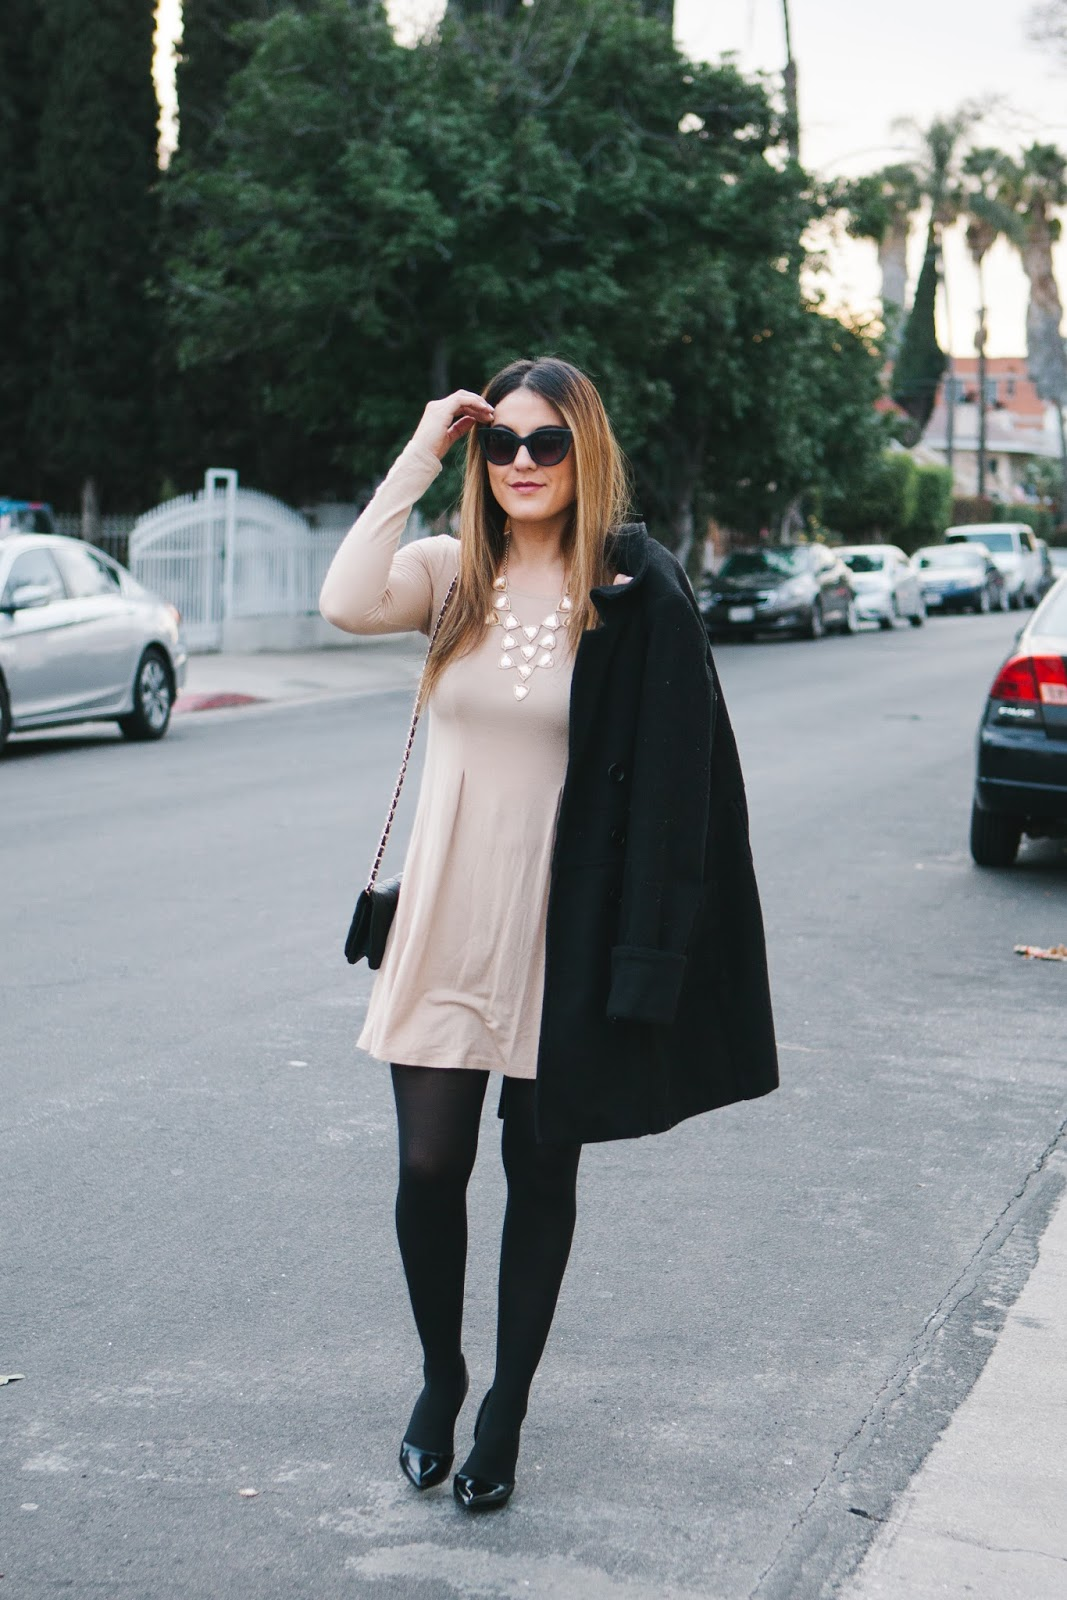 LA Style Blogger - My Cup of Chic